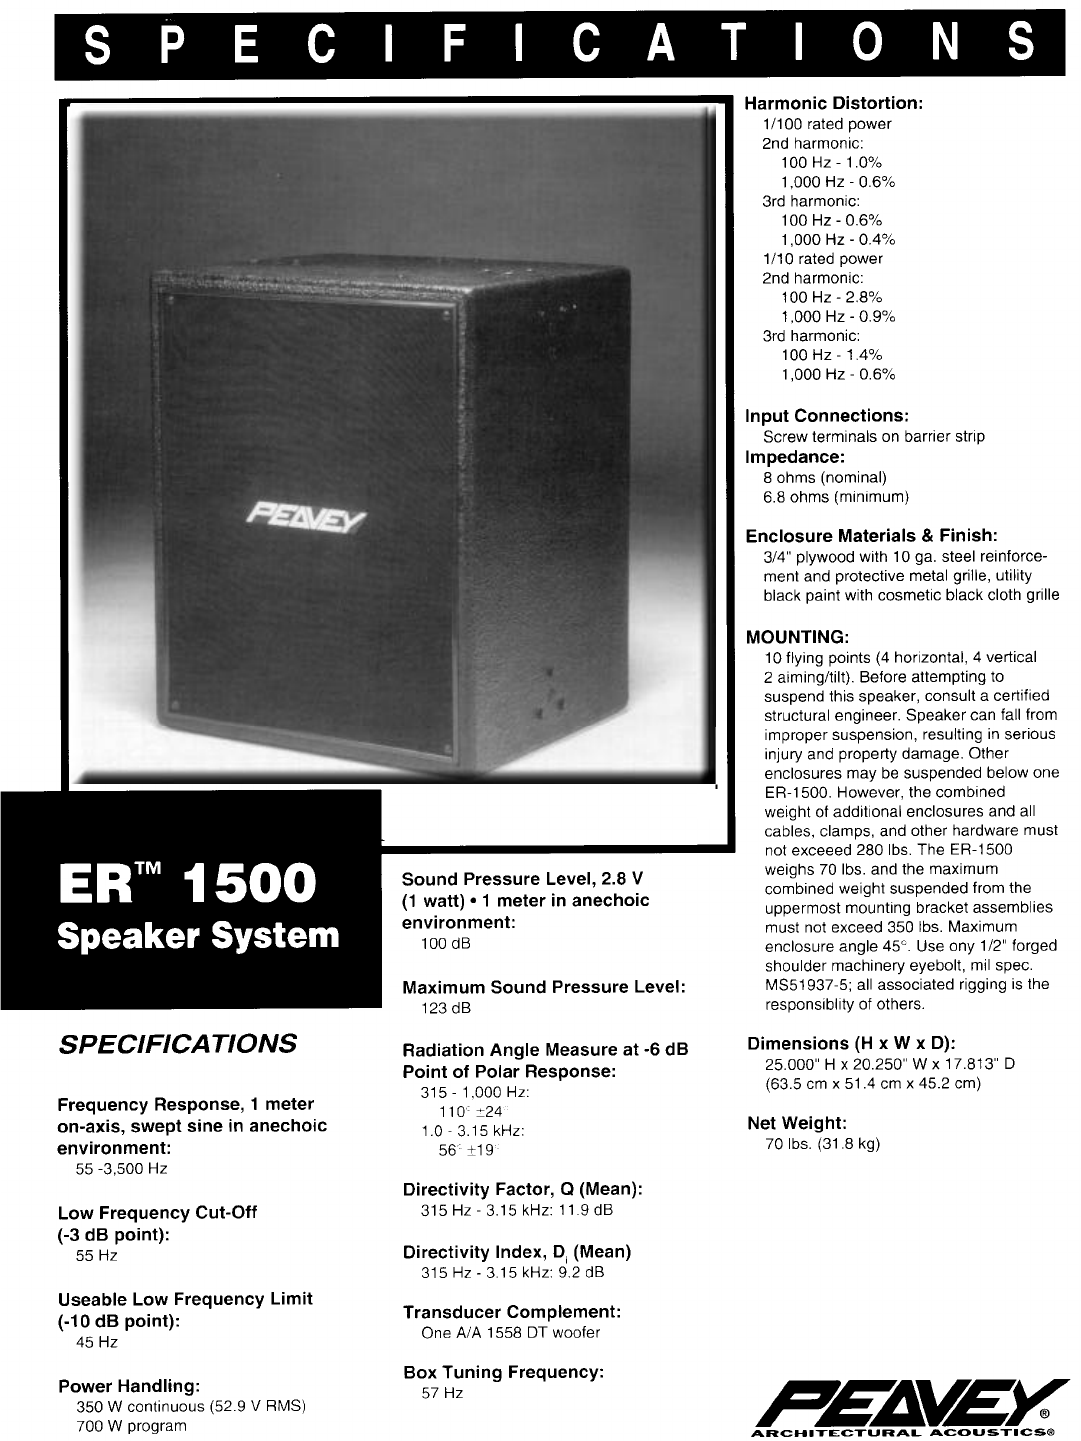 peavey speaker system er 1500 user guide manualsonline com rh audio manualsonline com Quick Reference Guide User Guide Icon